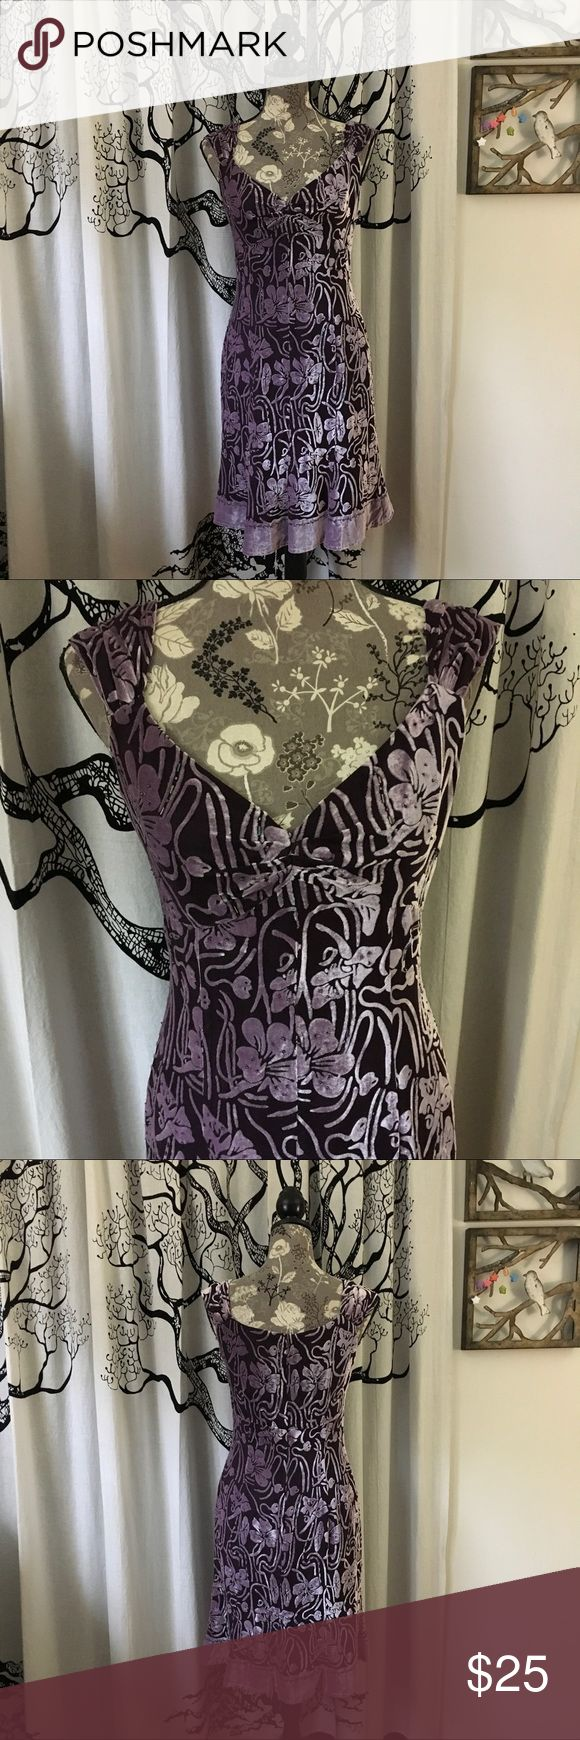 "Muse Iridescent Velvet Beaded Floral Dress SZ 6 Stunning floral velvet dress by Muse (Nordstrom) in iridescent lavender and dark purple. Beaded throughout. Full zip in the back. Ruffle hem. Fully lined. Gently loved, excellent condition with no flaws. Beading intact. True to size in my opinion. Please check measurements against your own for accurate sizing. Add 1""-2"" to bust measurement given to account for darts.    **Be sure to check out the additional photos for measurements and fabric…"